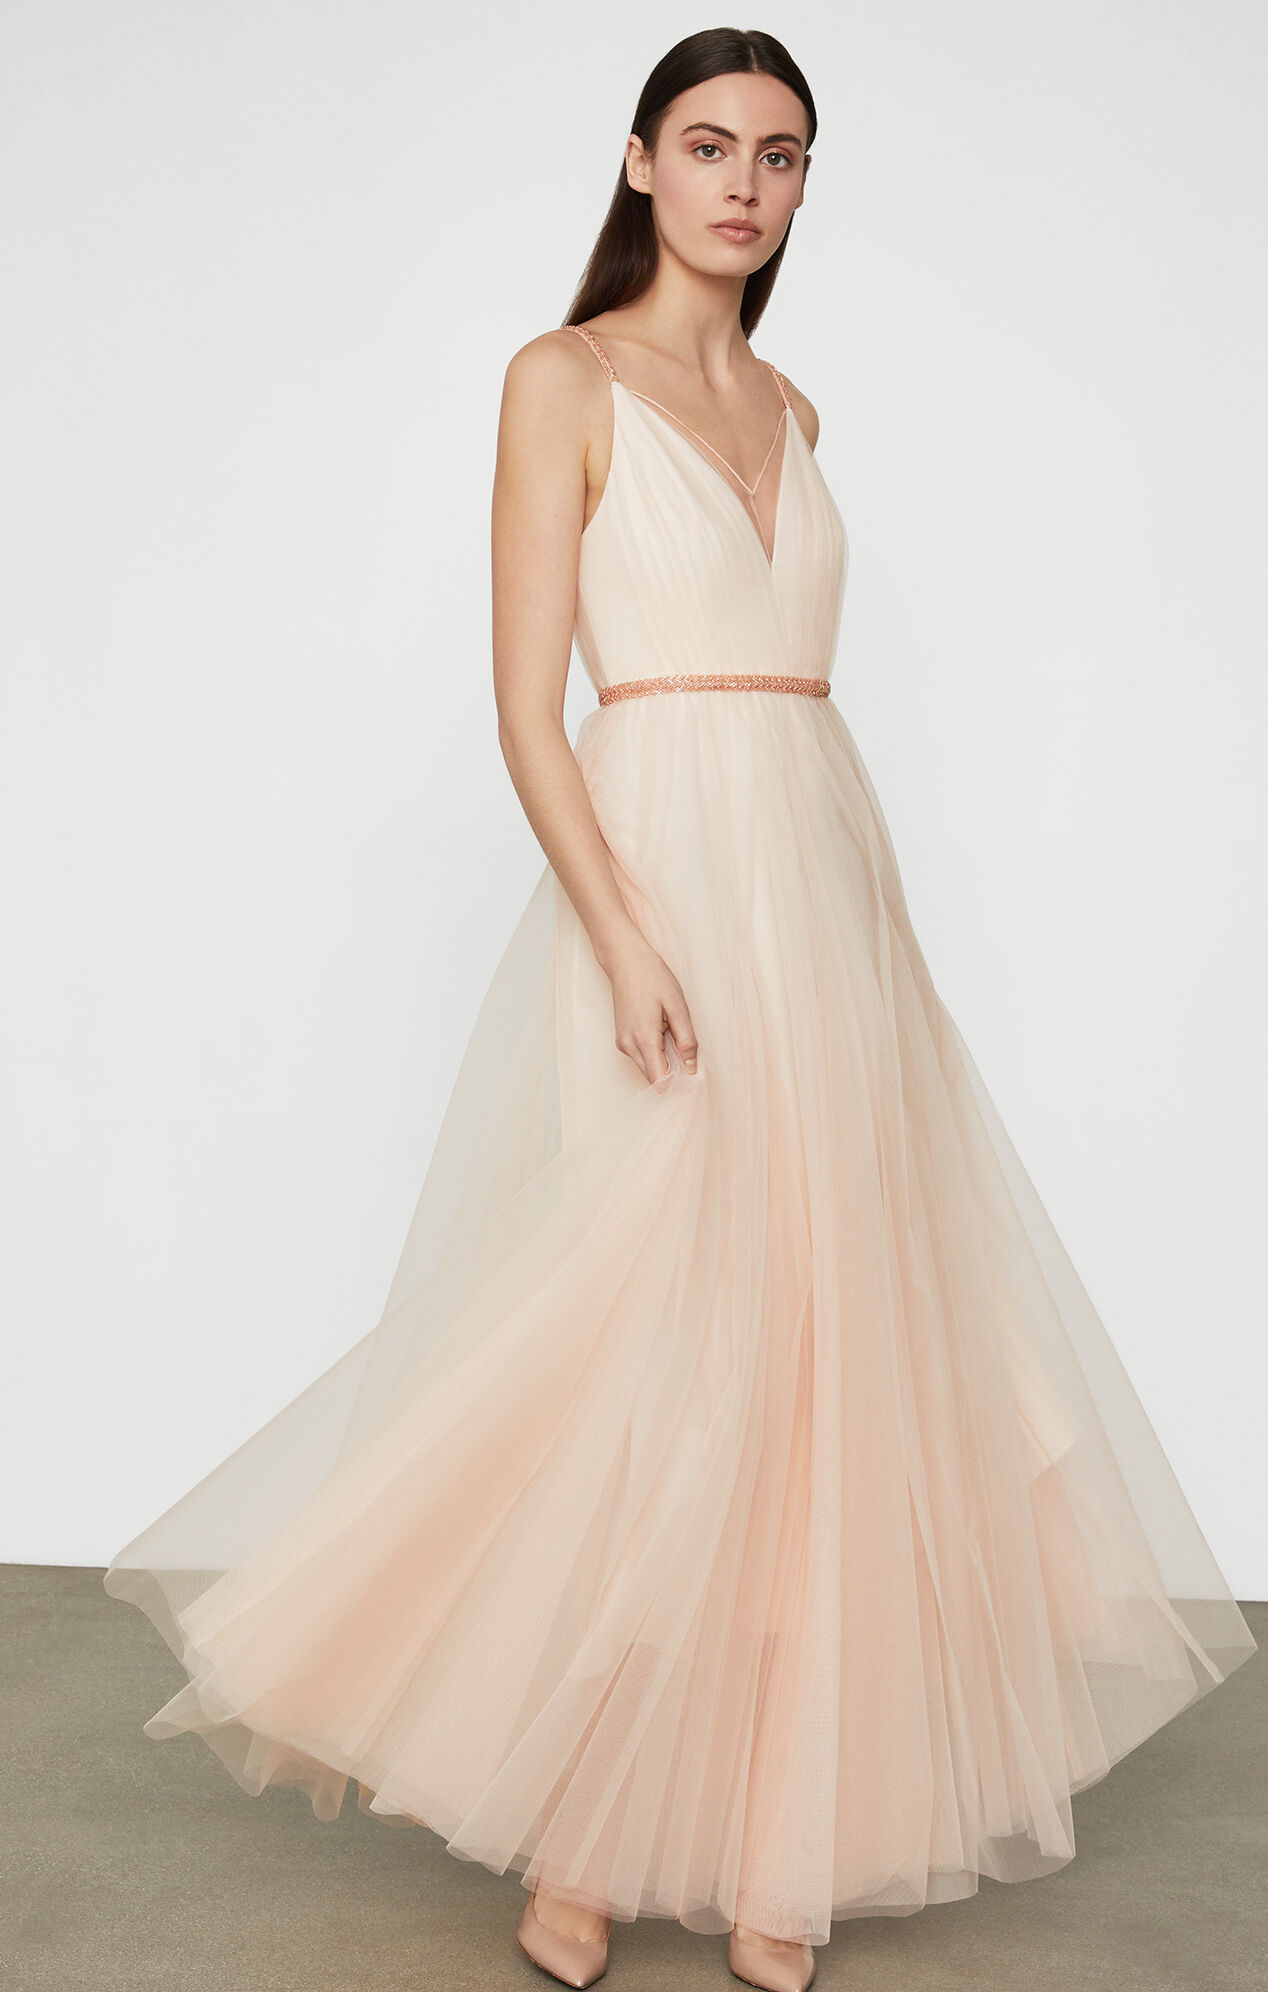 Woman with dark hair in blush colored flowy ballerina style floor length gown